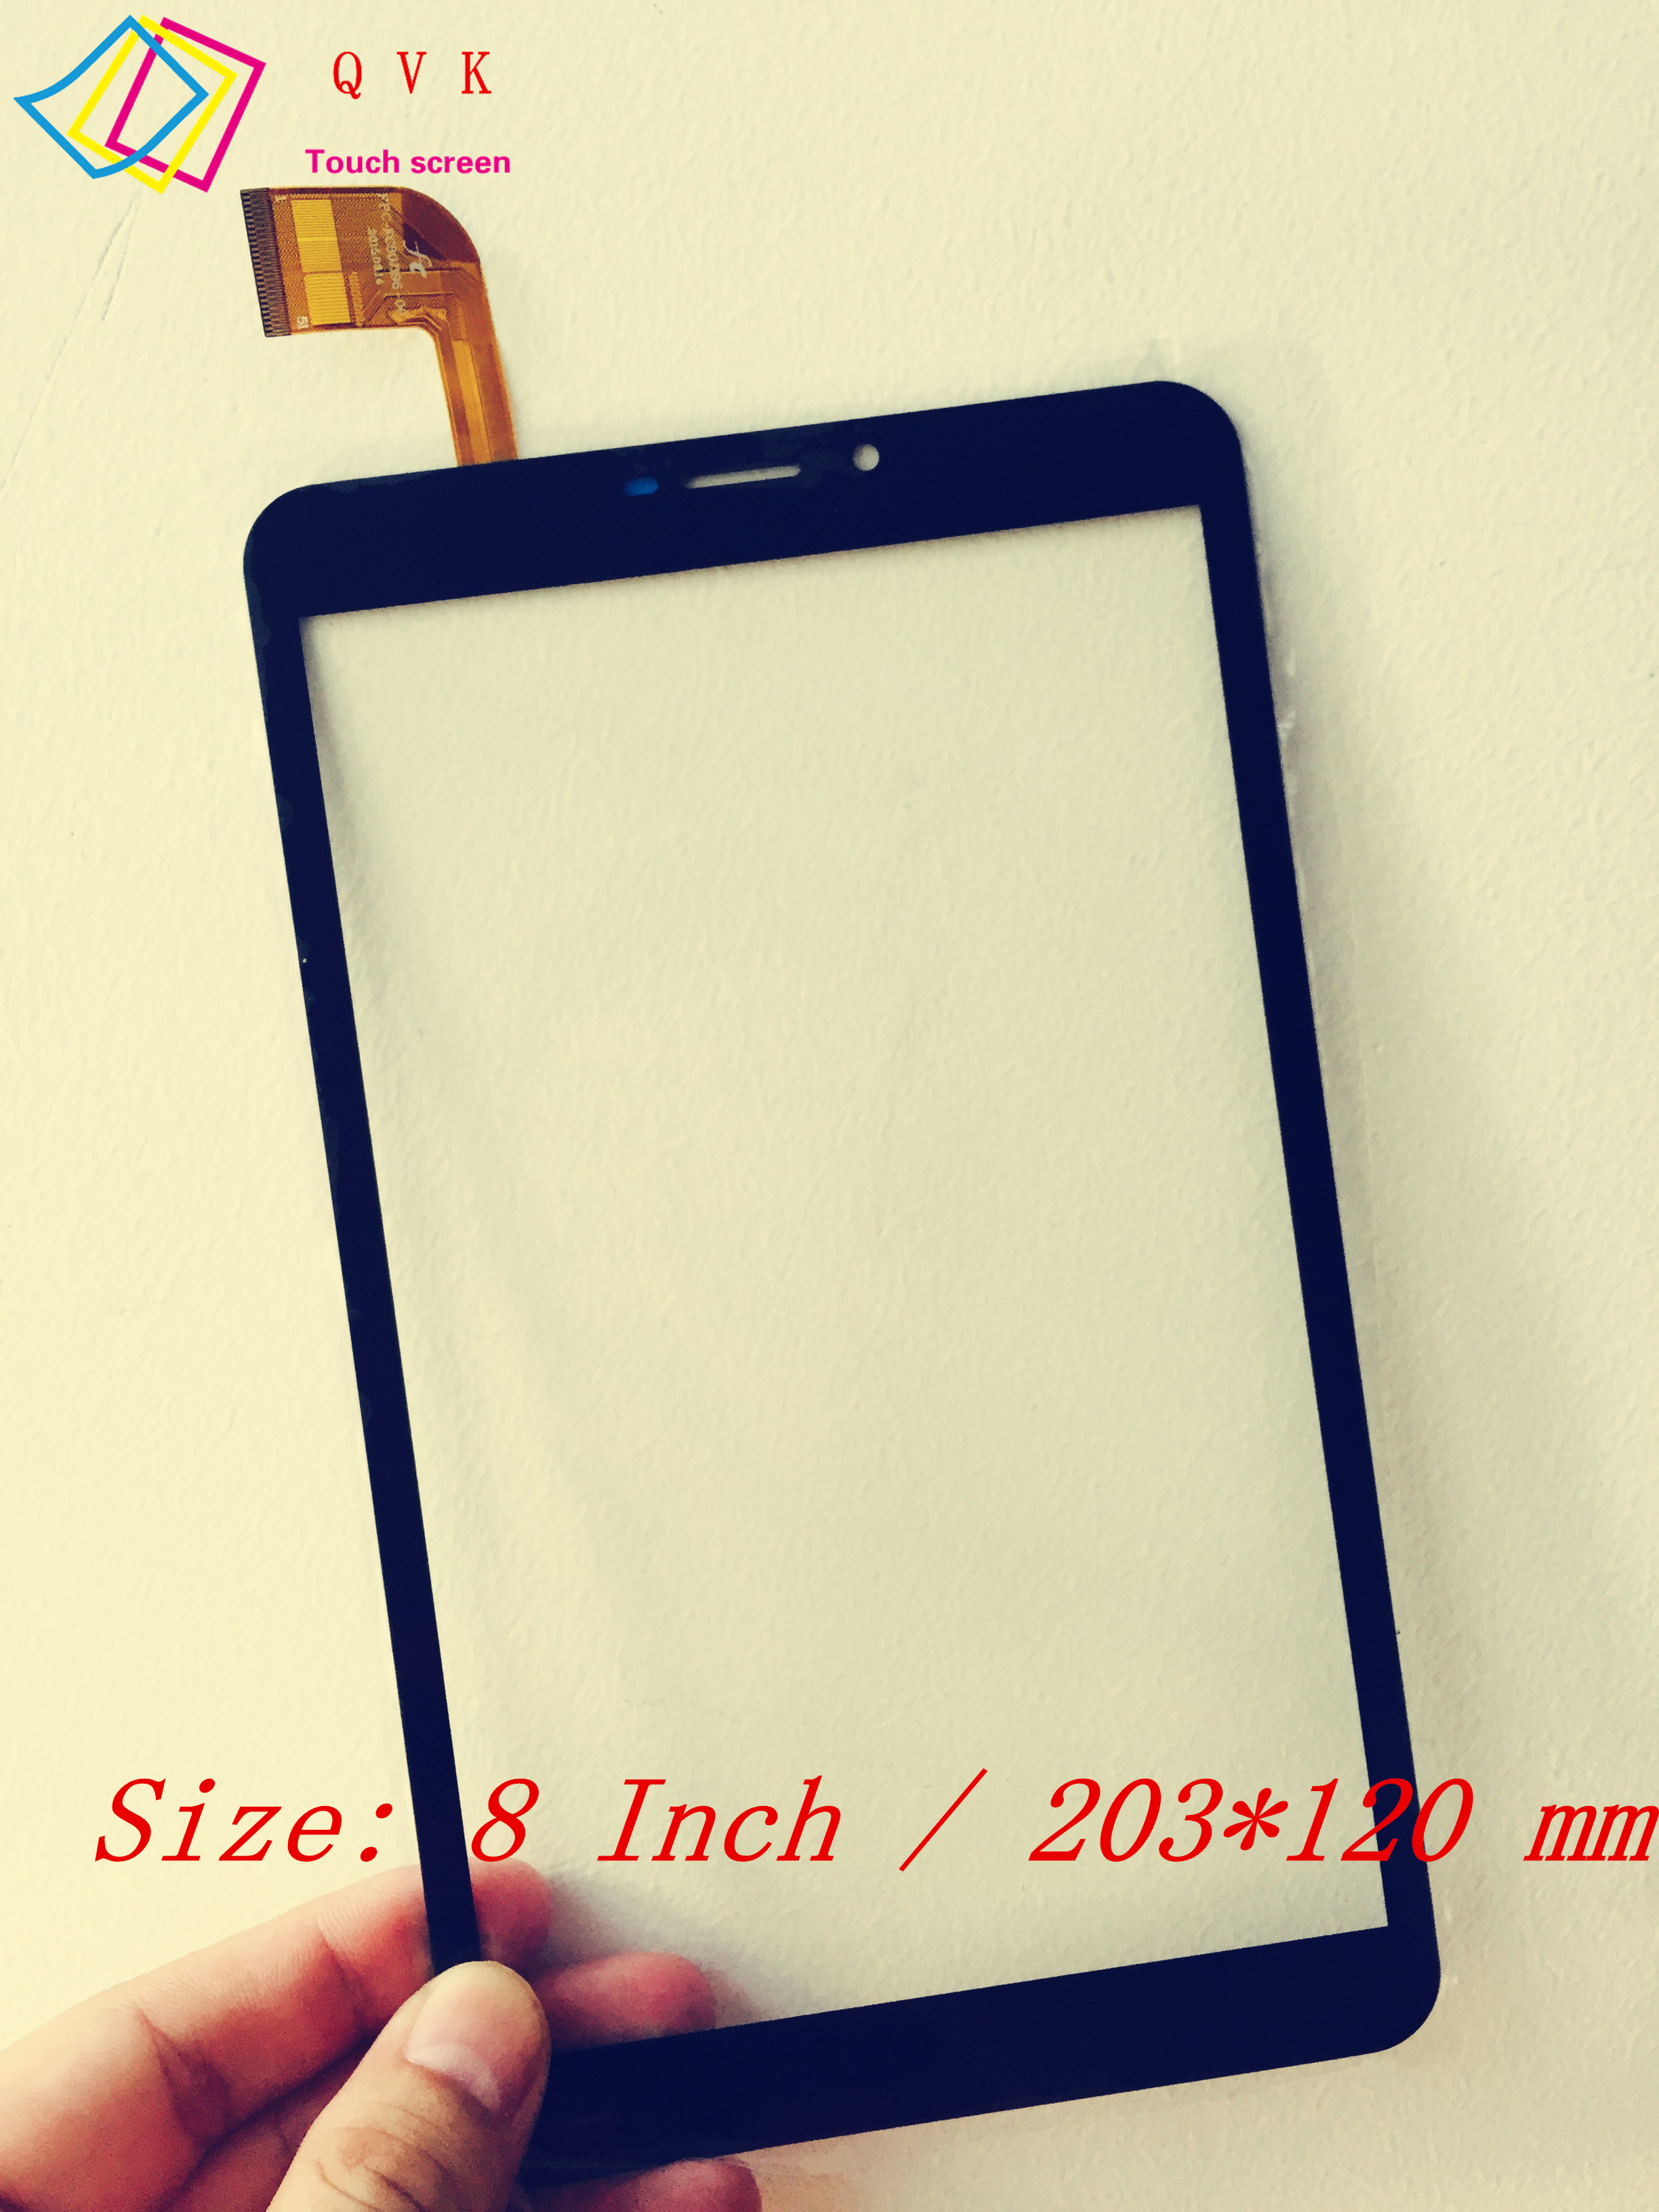 Black 8 Inch for Vonino Pluri Q8 /  GINZZU GT W831 tablet pc capacitive touch screen glass digitizer panel Free shipping|capacitive touch screen|touch screen|touch screen capacitive - title=